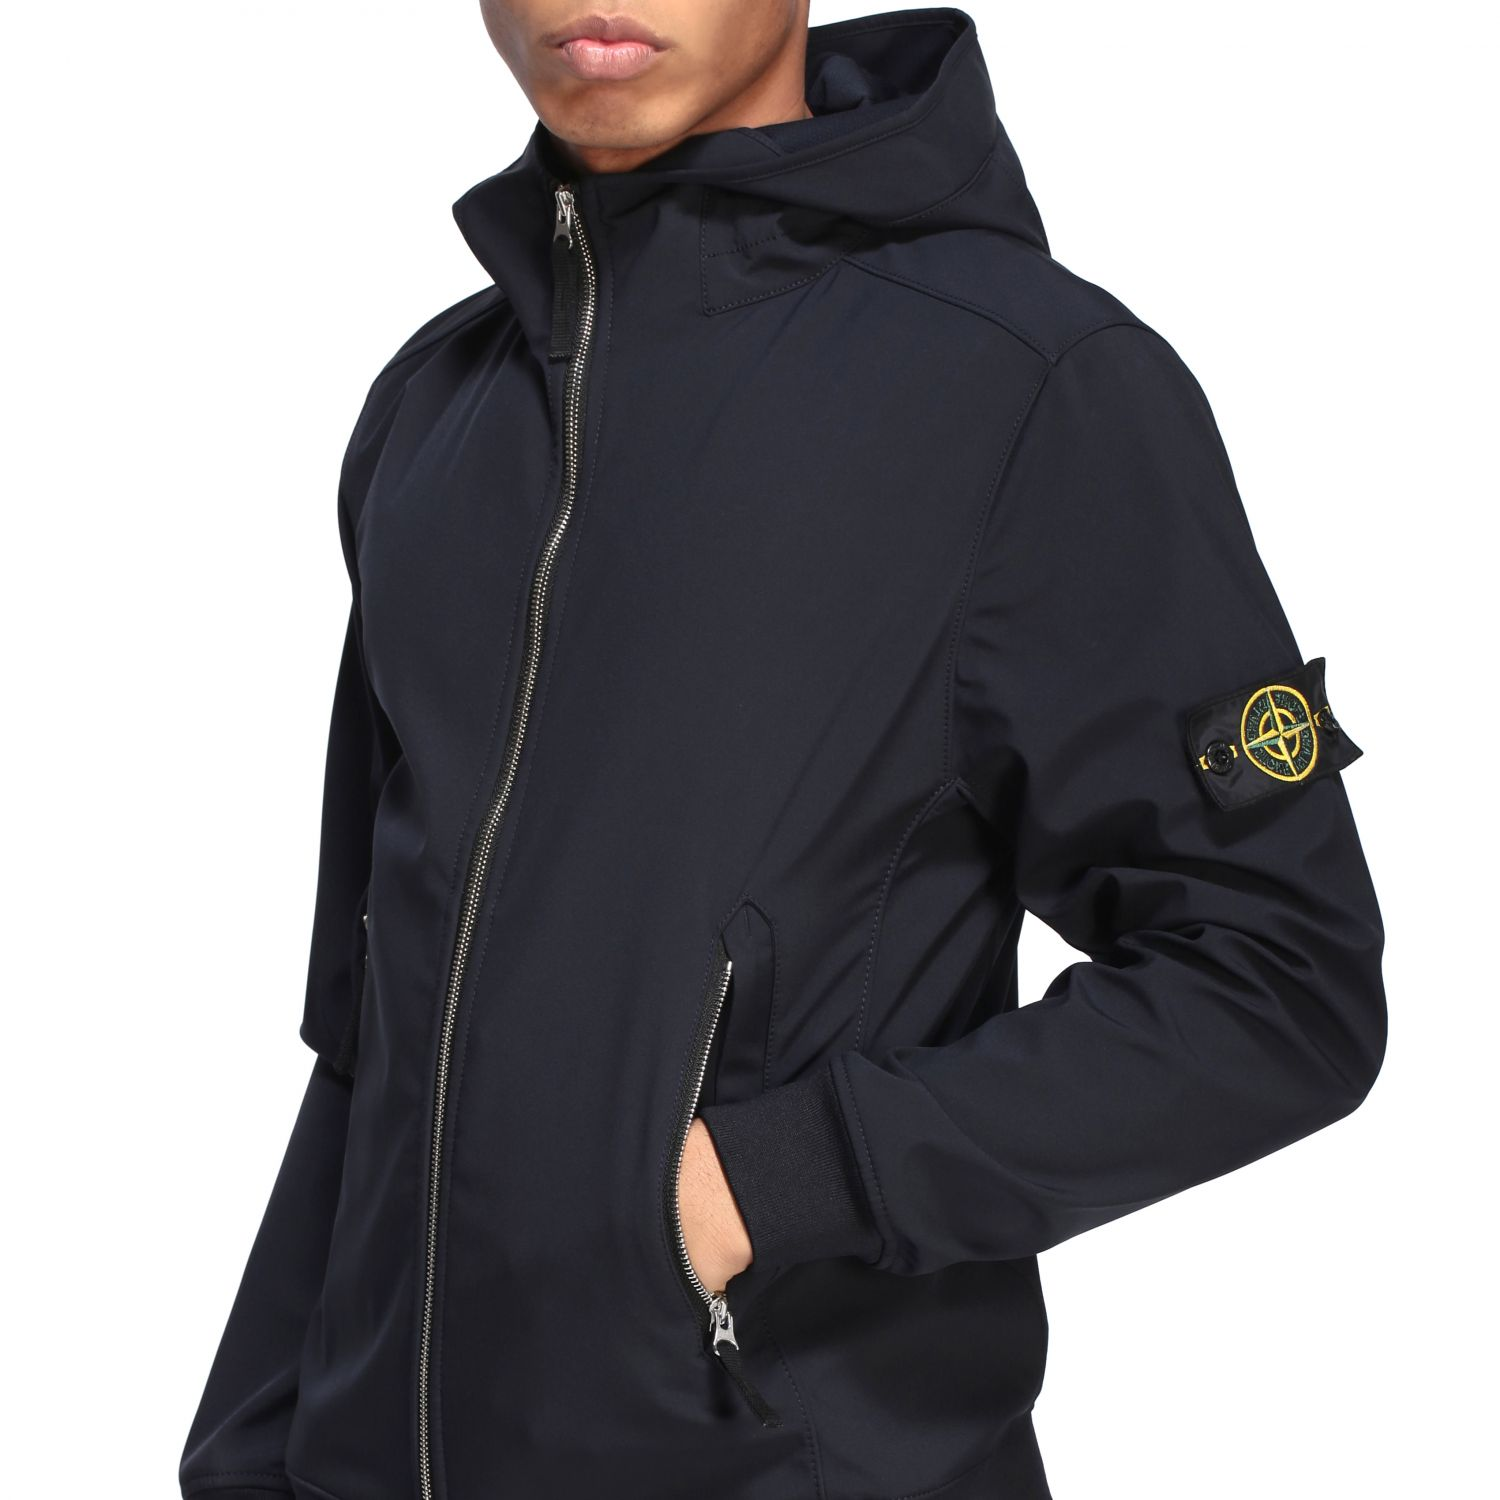 Stone Island soft shell light jacket with hood navy 5